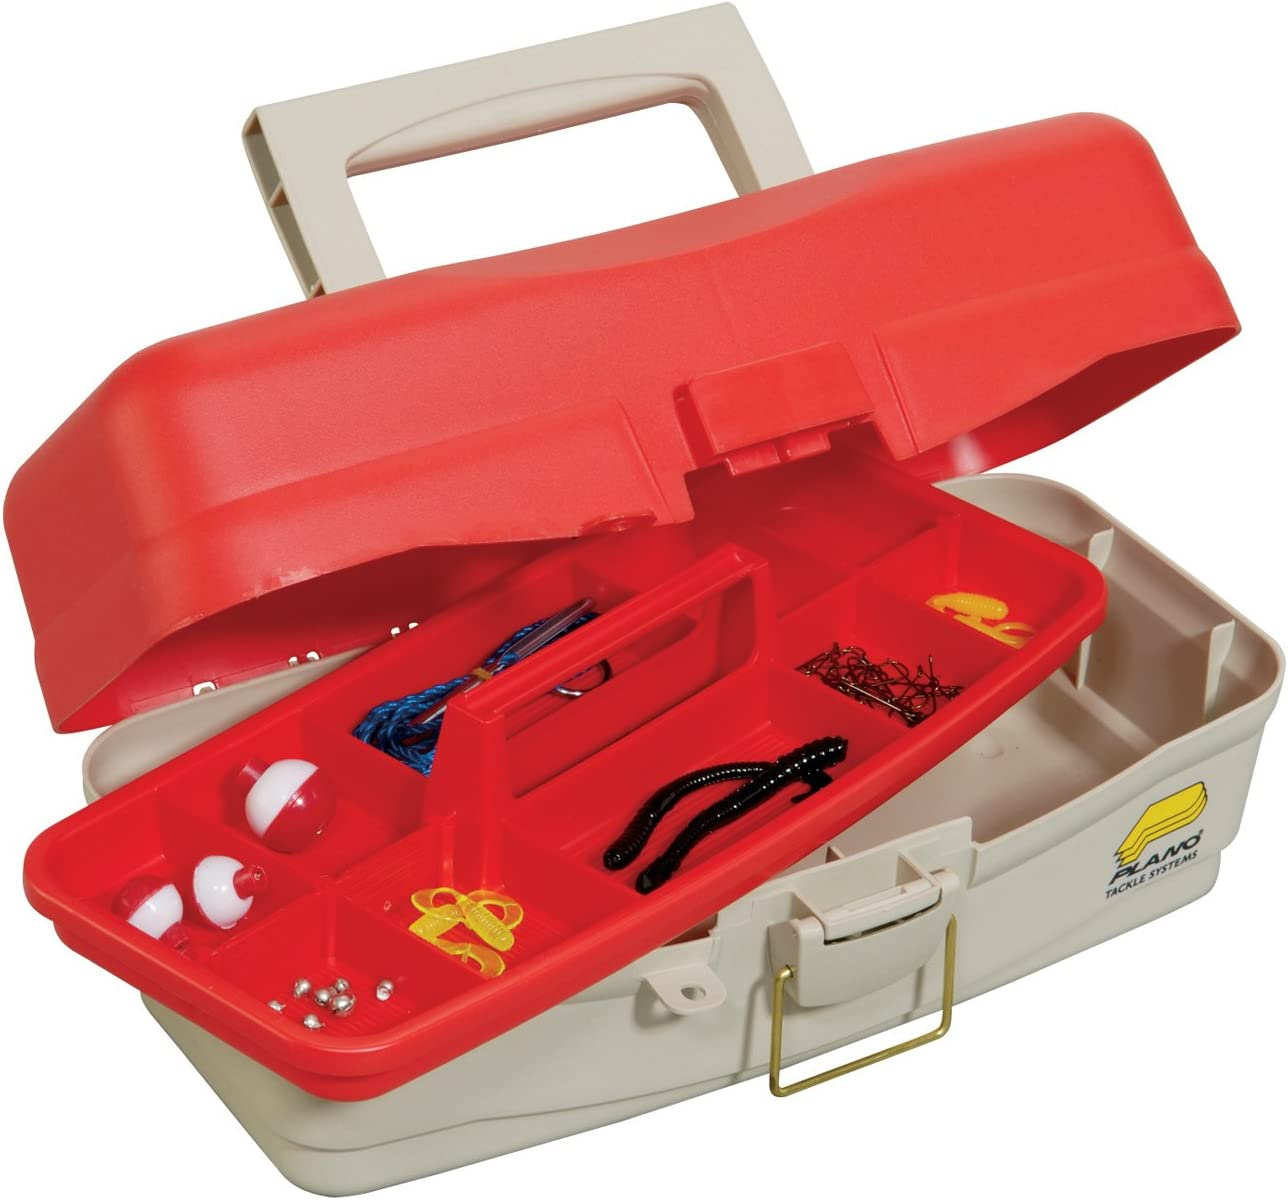 Plano One Tray Take Me Fishing Factory outlet Box with Tackle Nippon regular agency Premium T